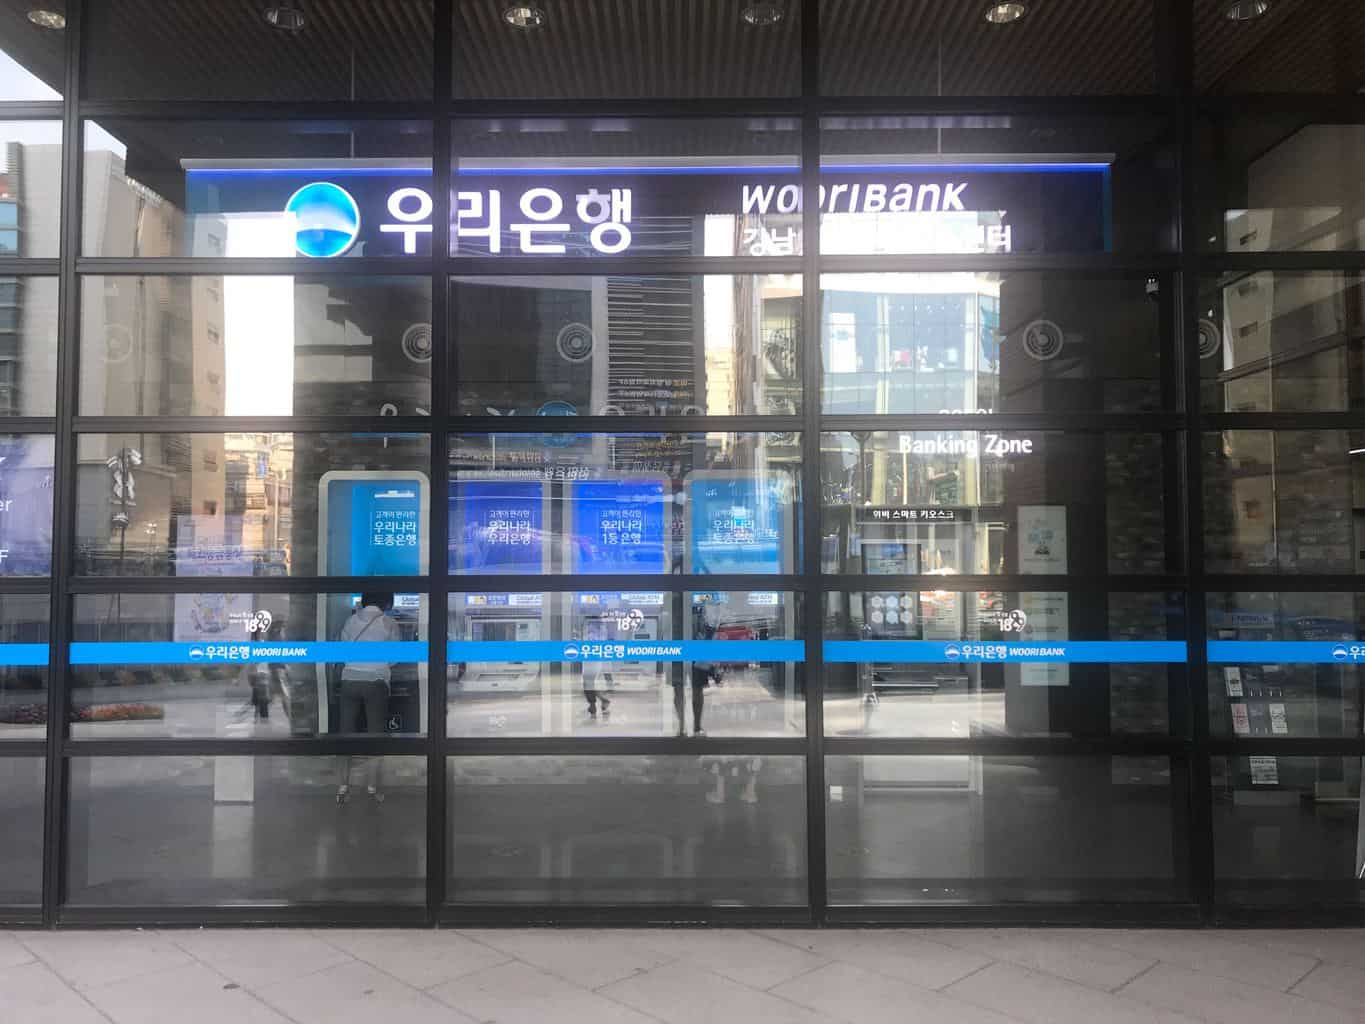 Woori Bank Gangnam branch in Seoul, South Korea